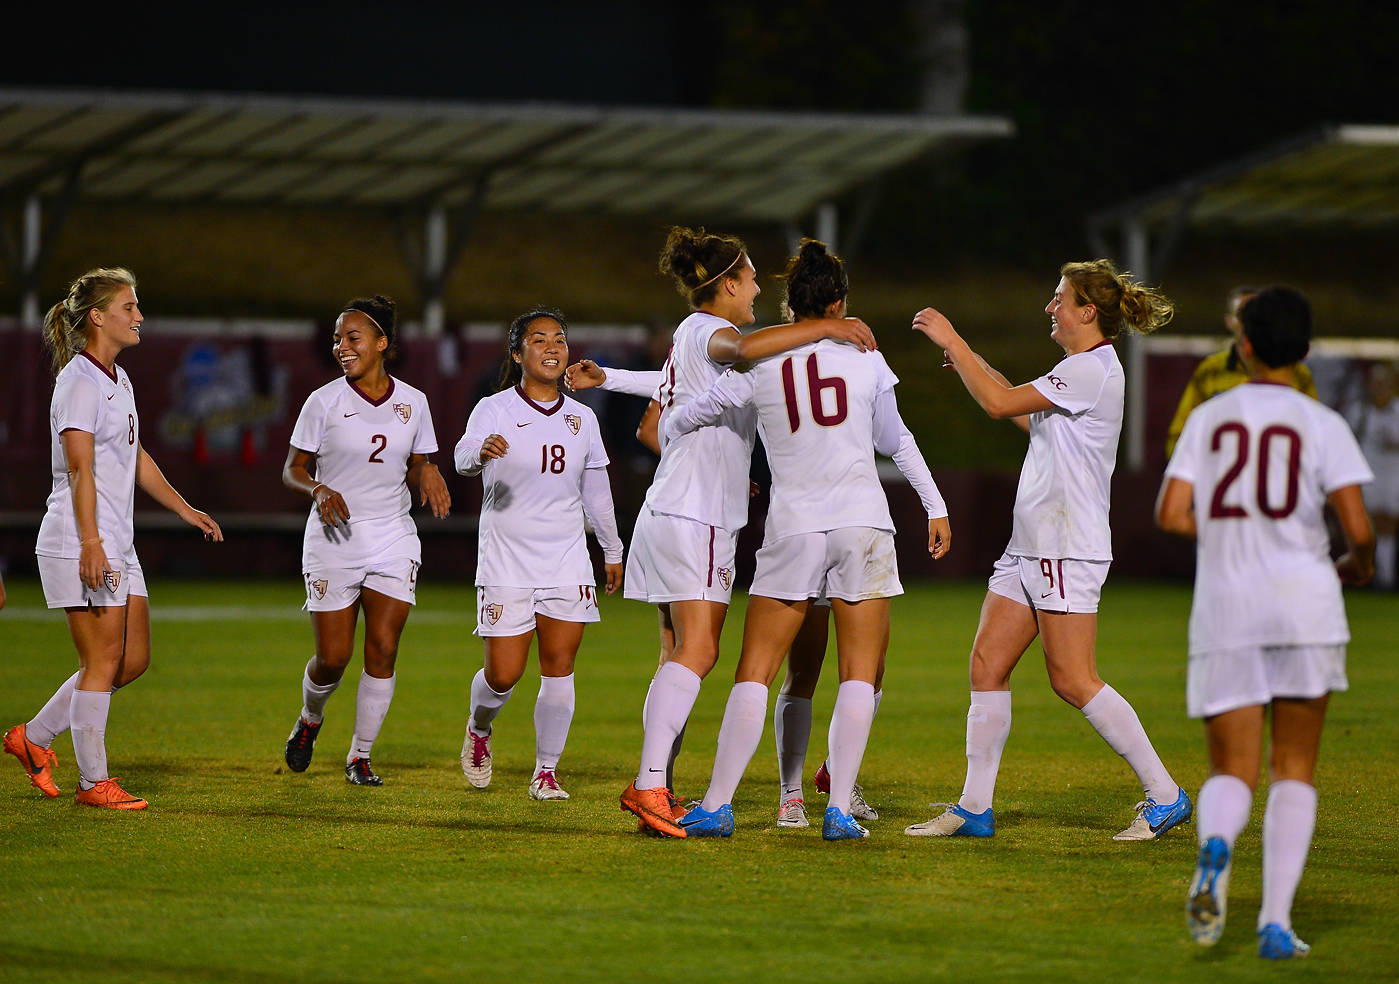 The Seminoles celebrate after Marta scores her first career goal.